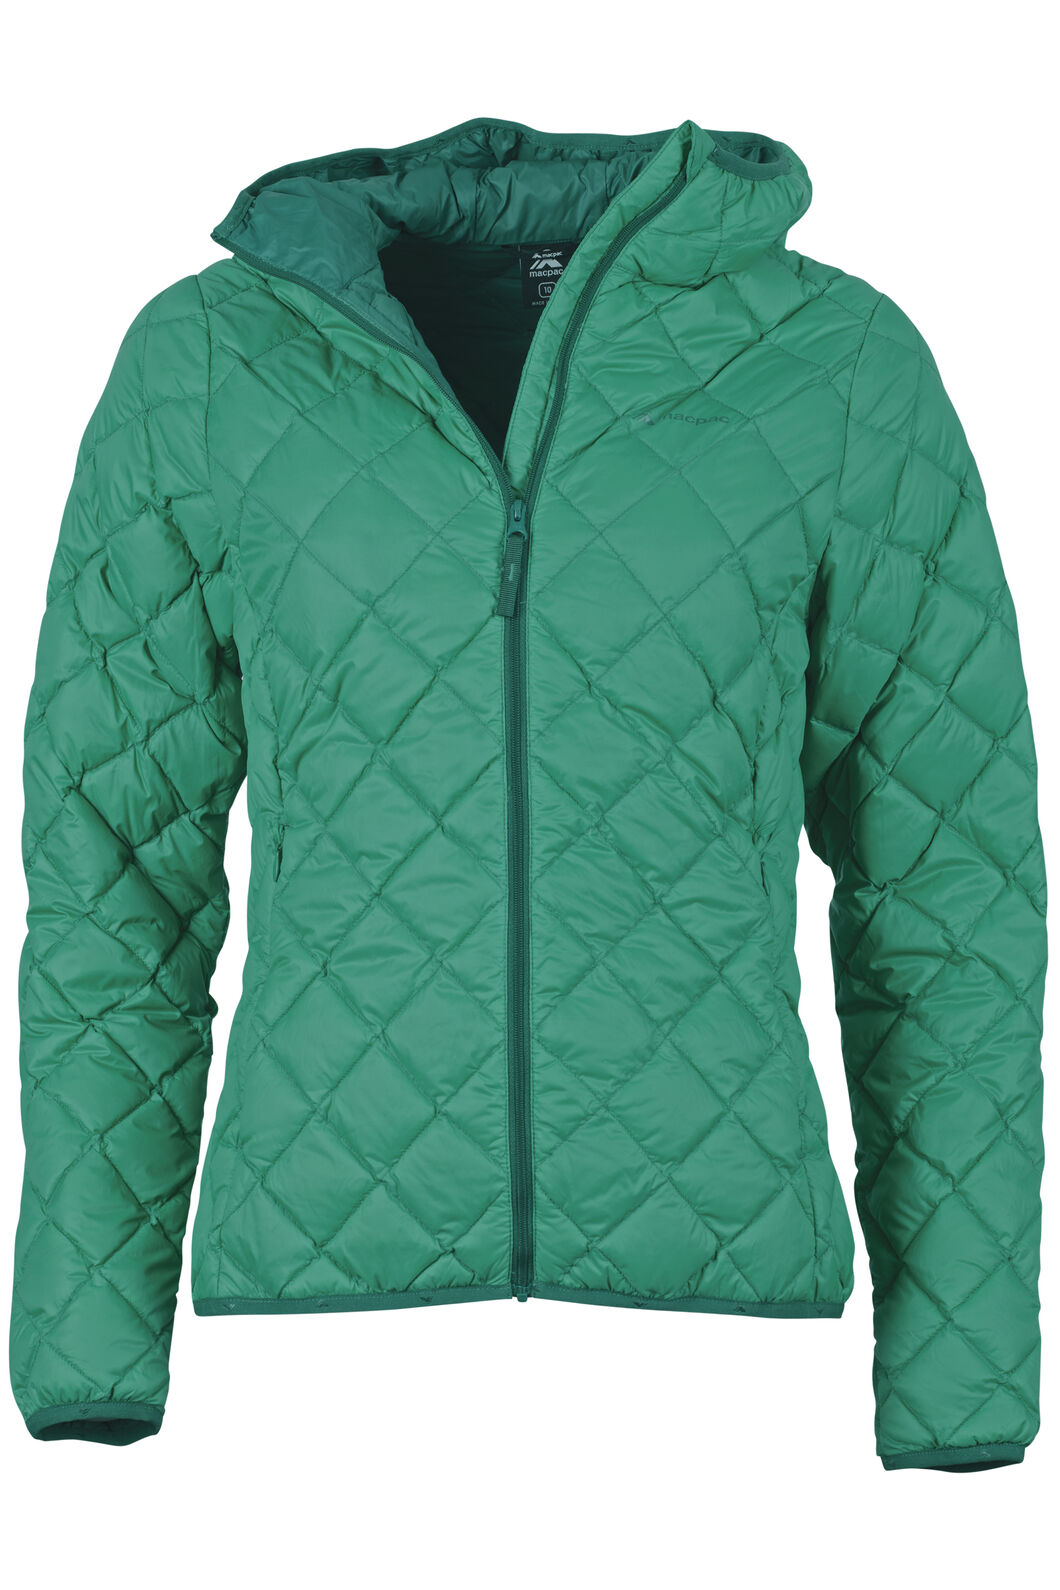 Uber Light Hooded Down Jacket - Women's, Arcadia, hi-res